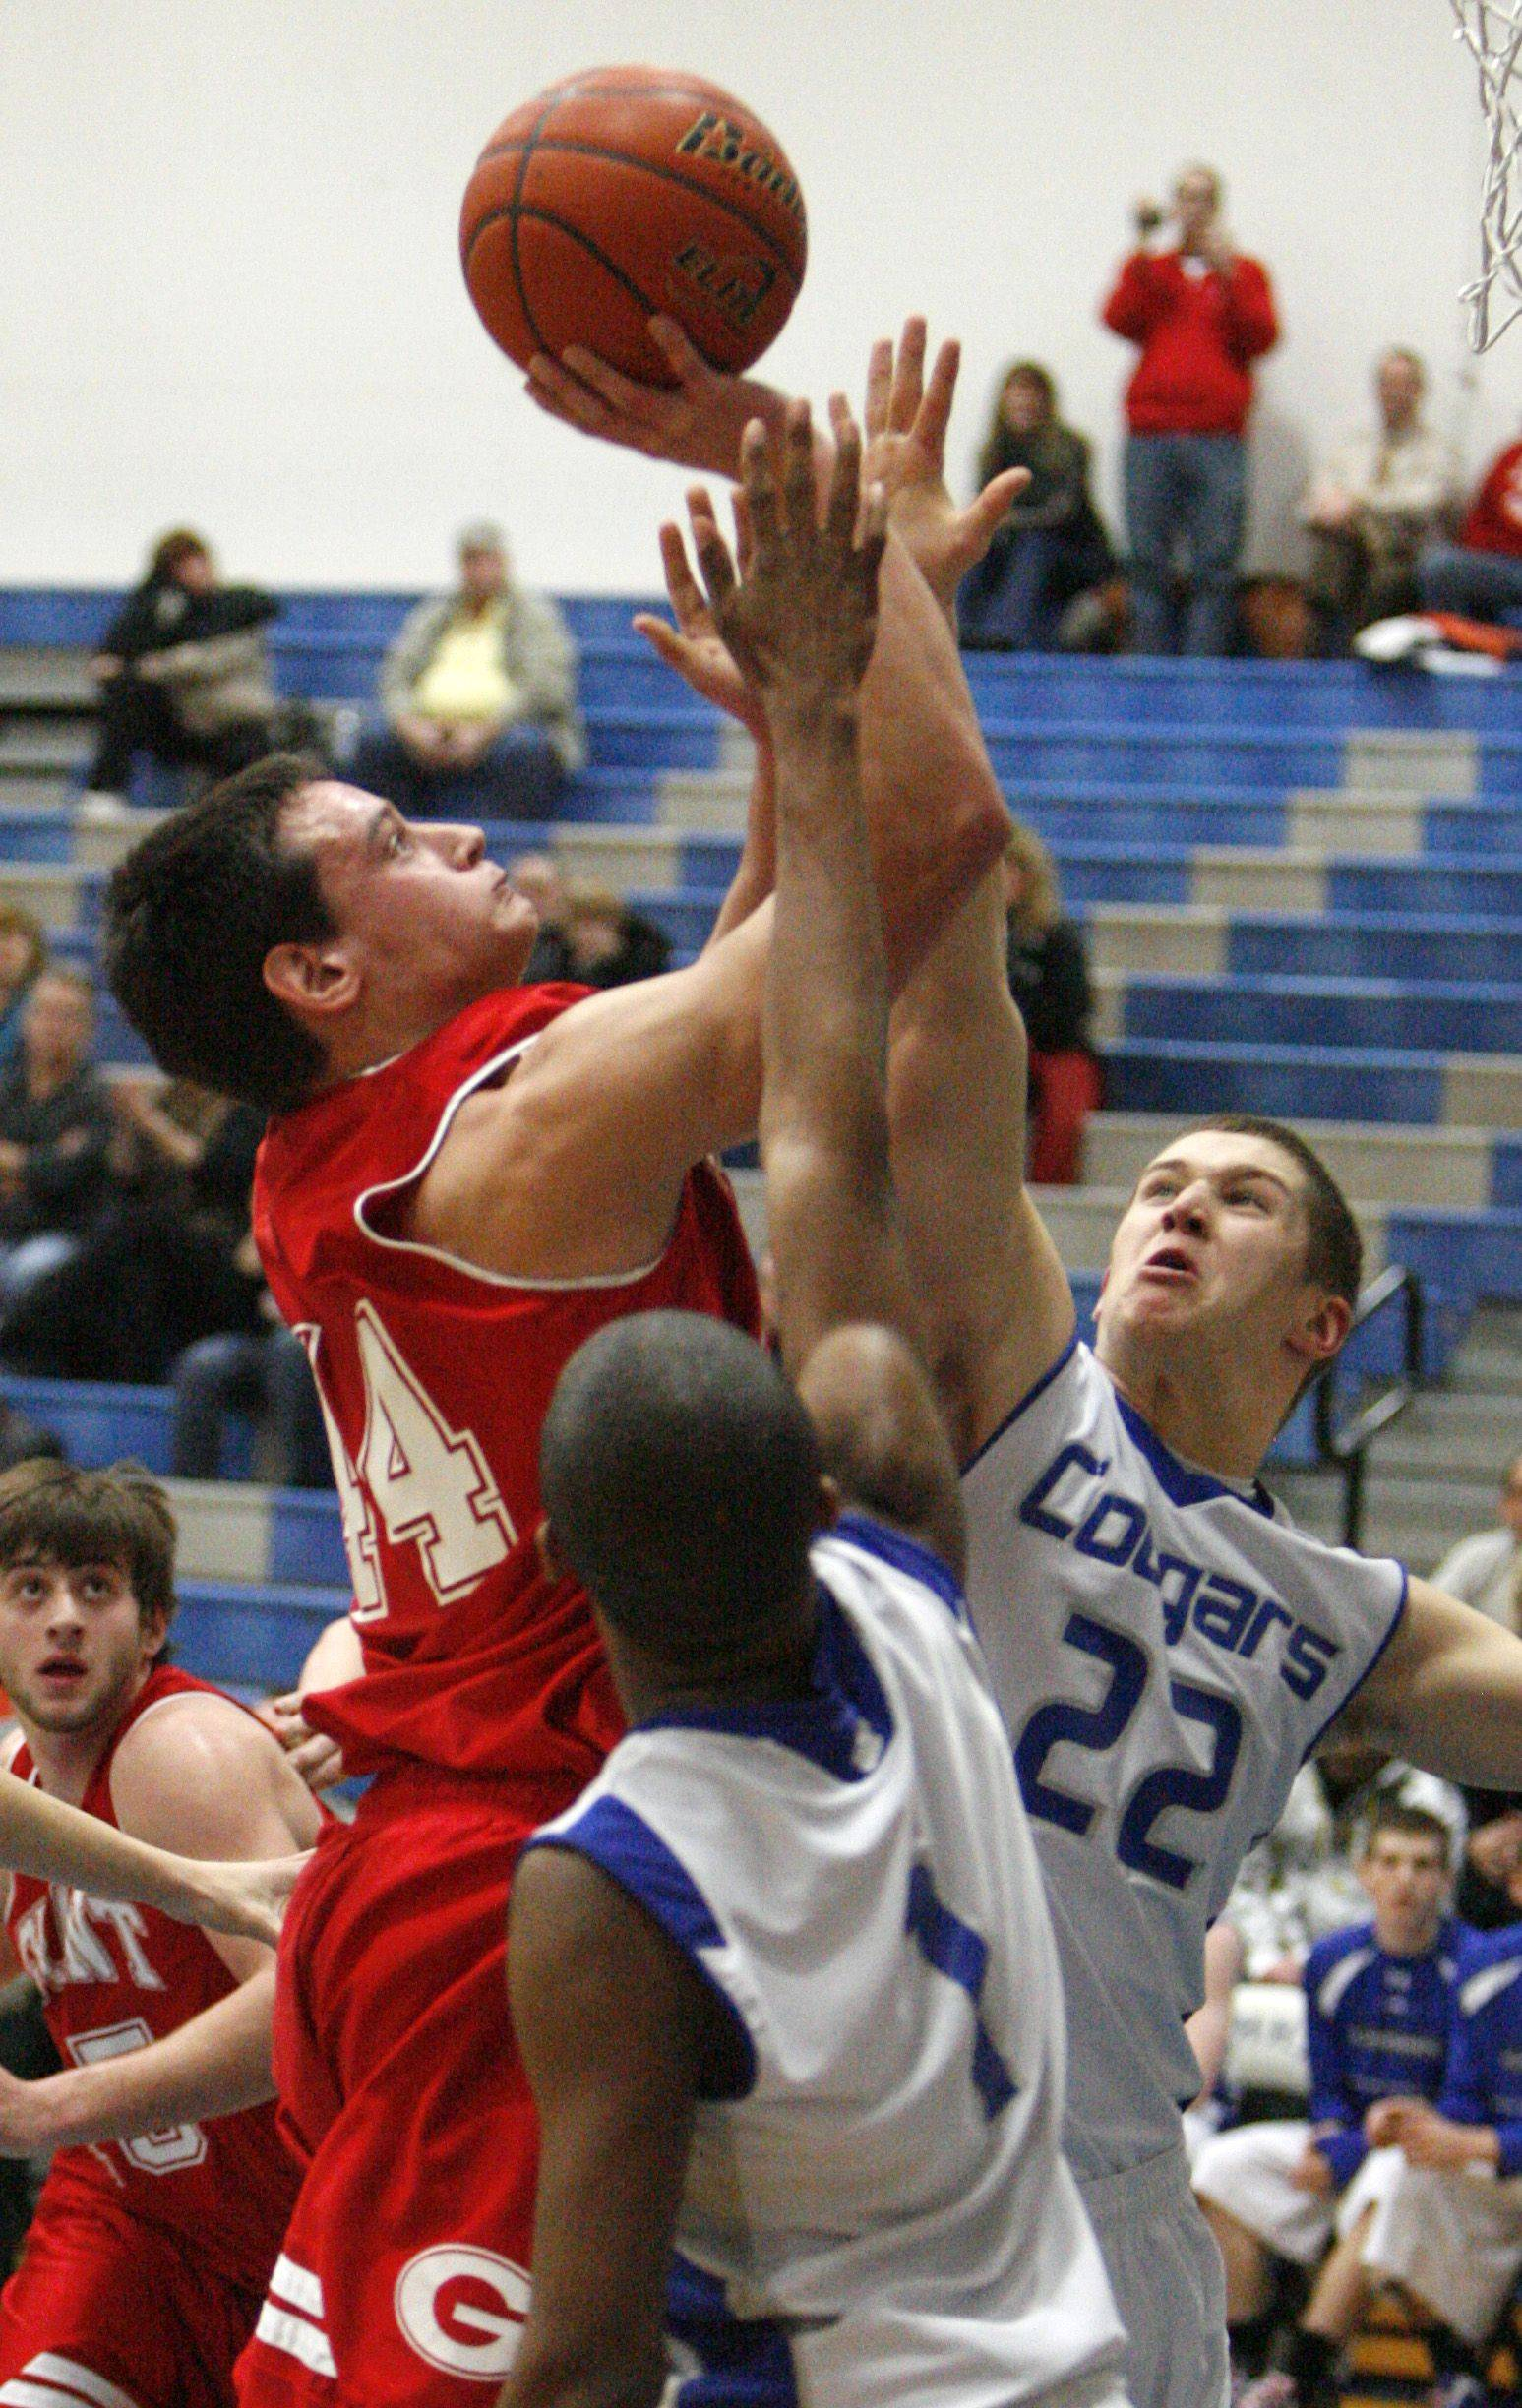 Grant's Brandon Lombardino drives the lane and shoots against Vernon Hills' Jarrett Wood.